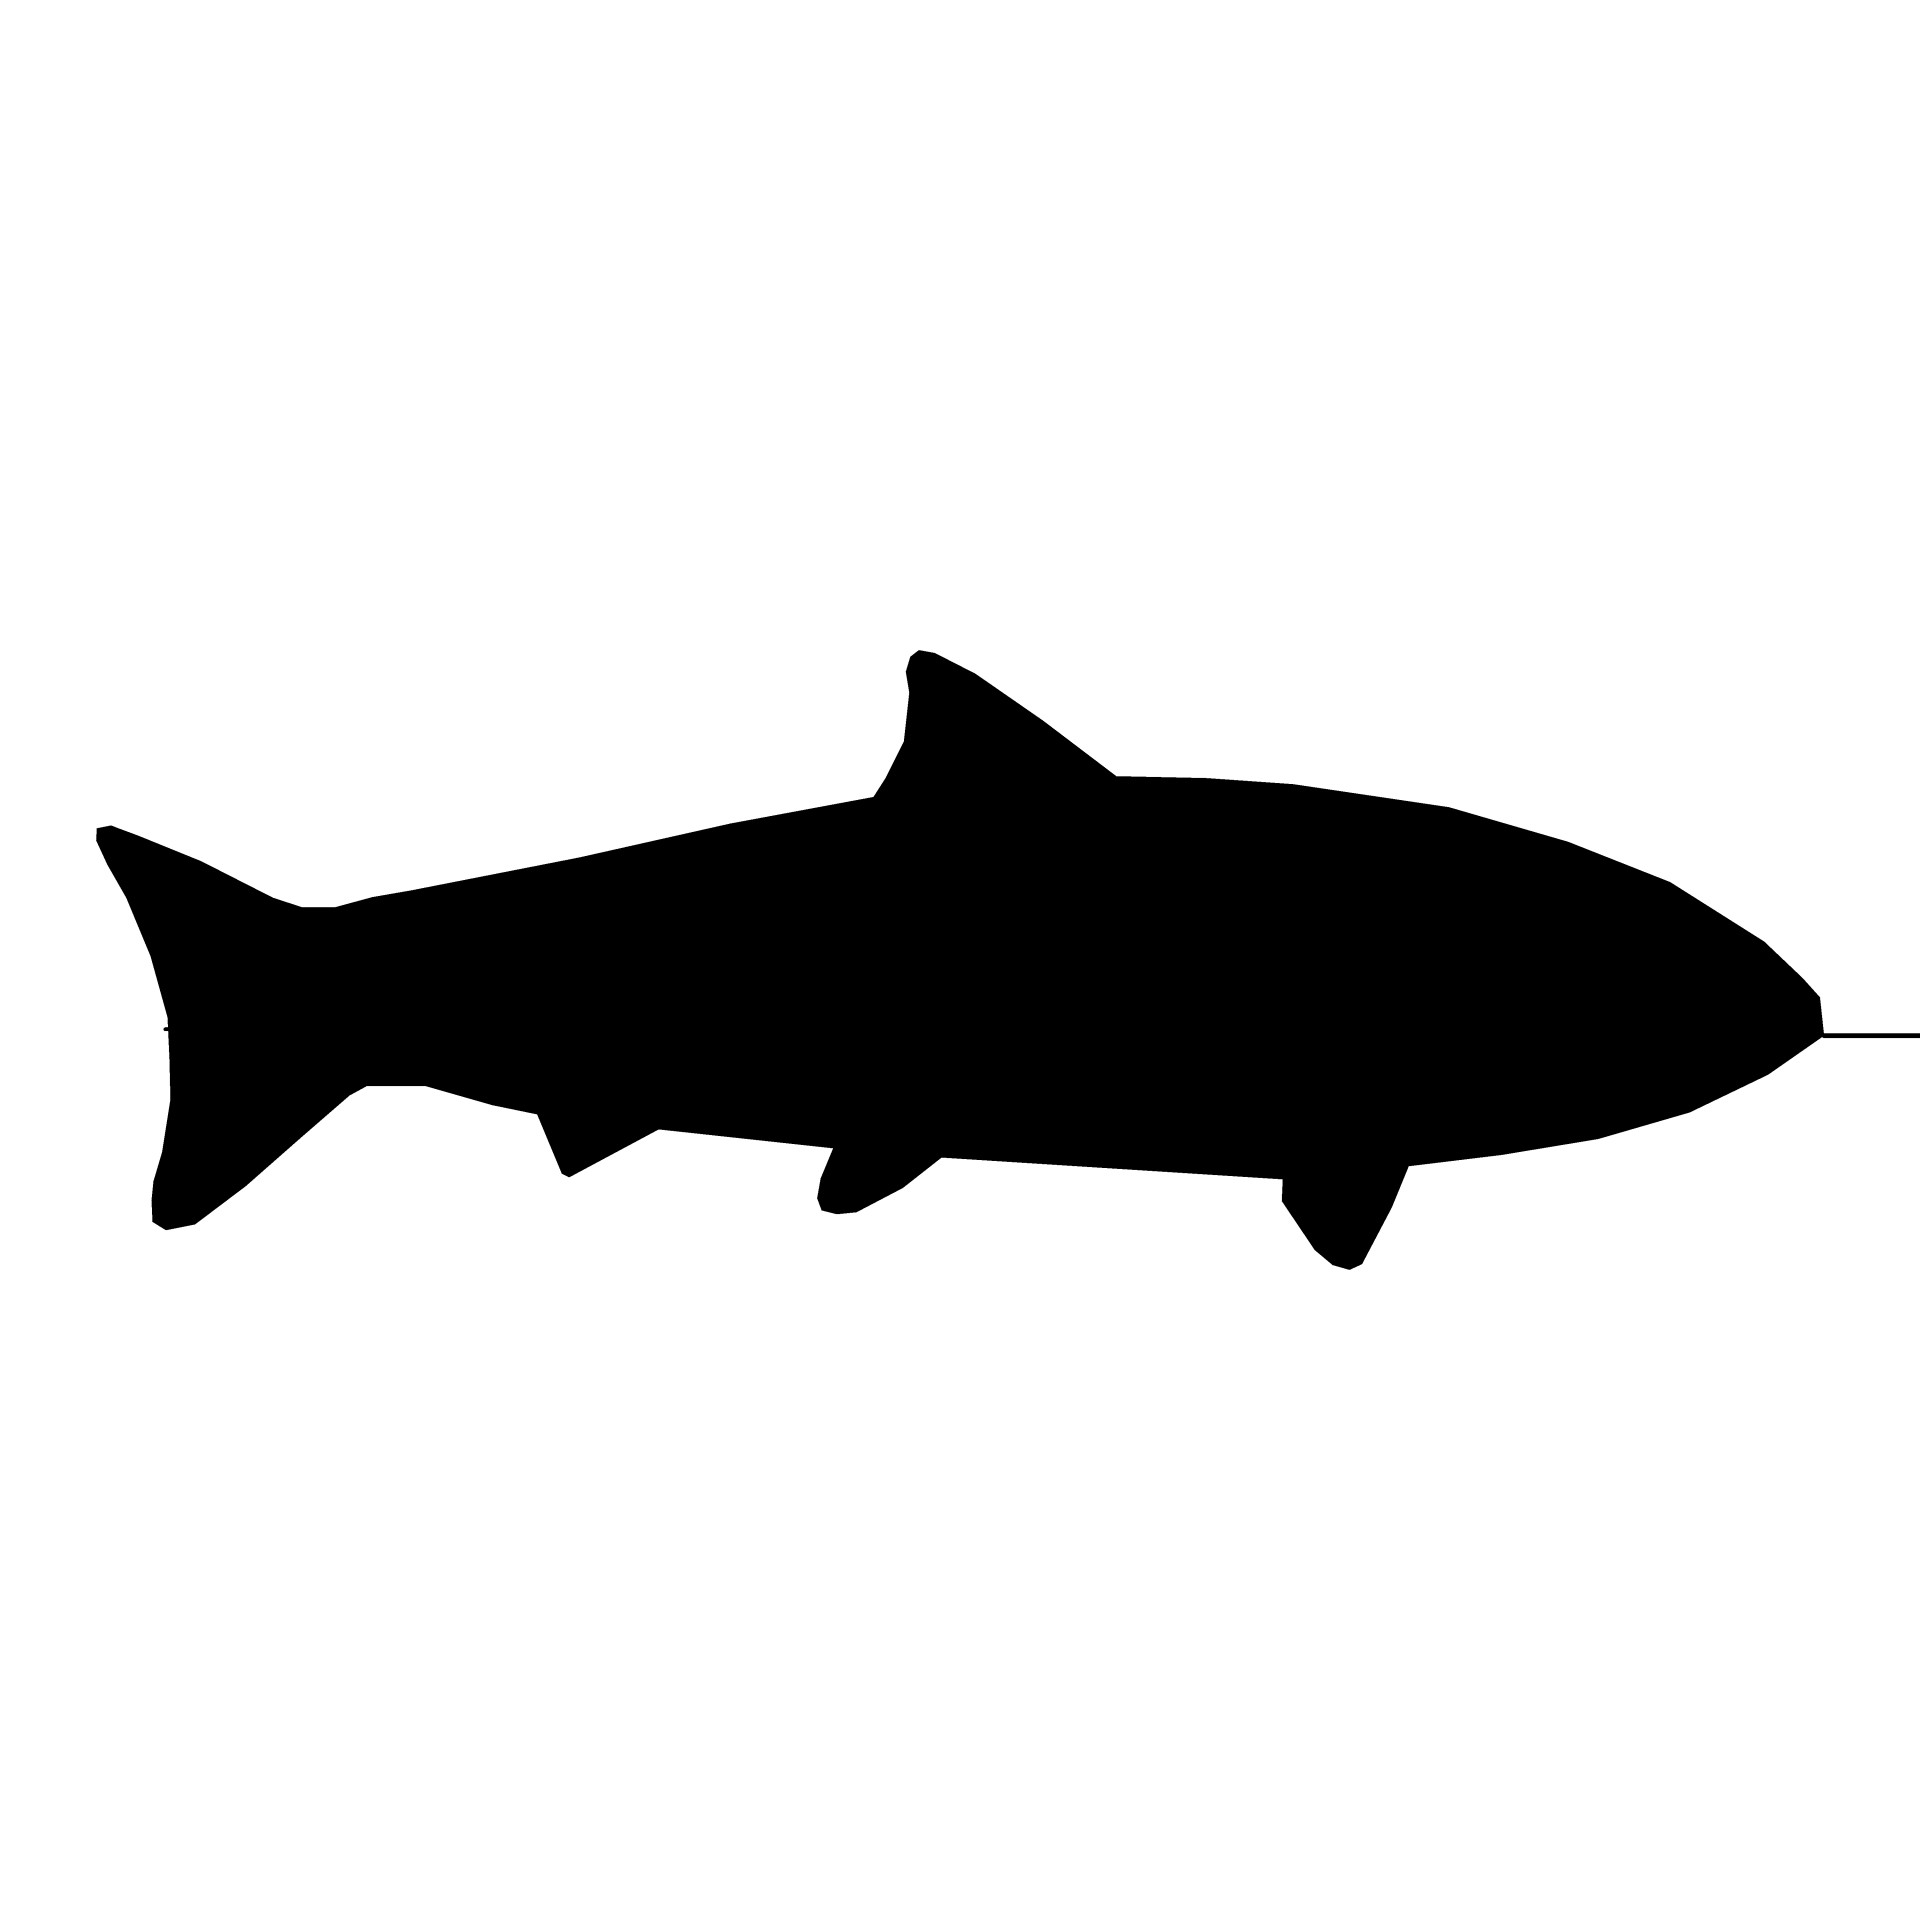 1920x1920 Fish Silhouette Free Stock Photo